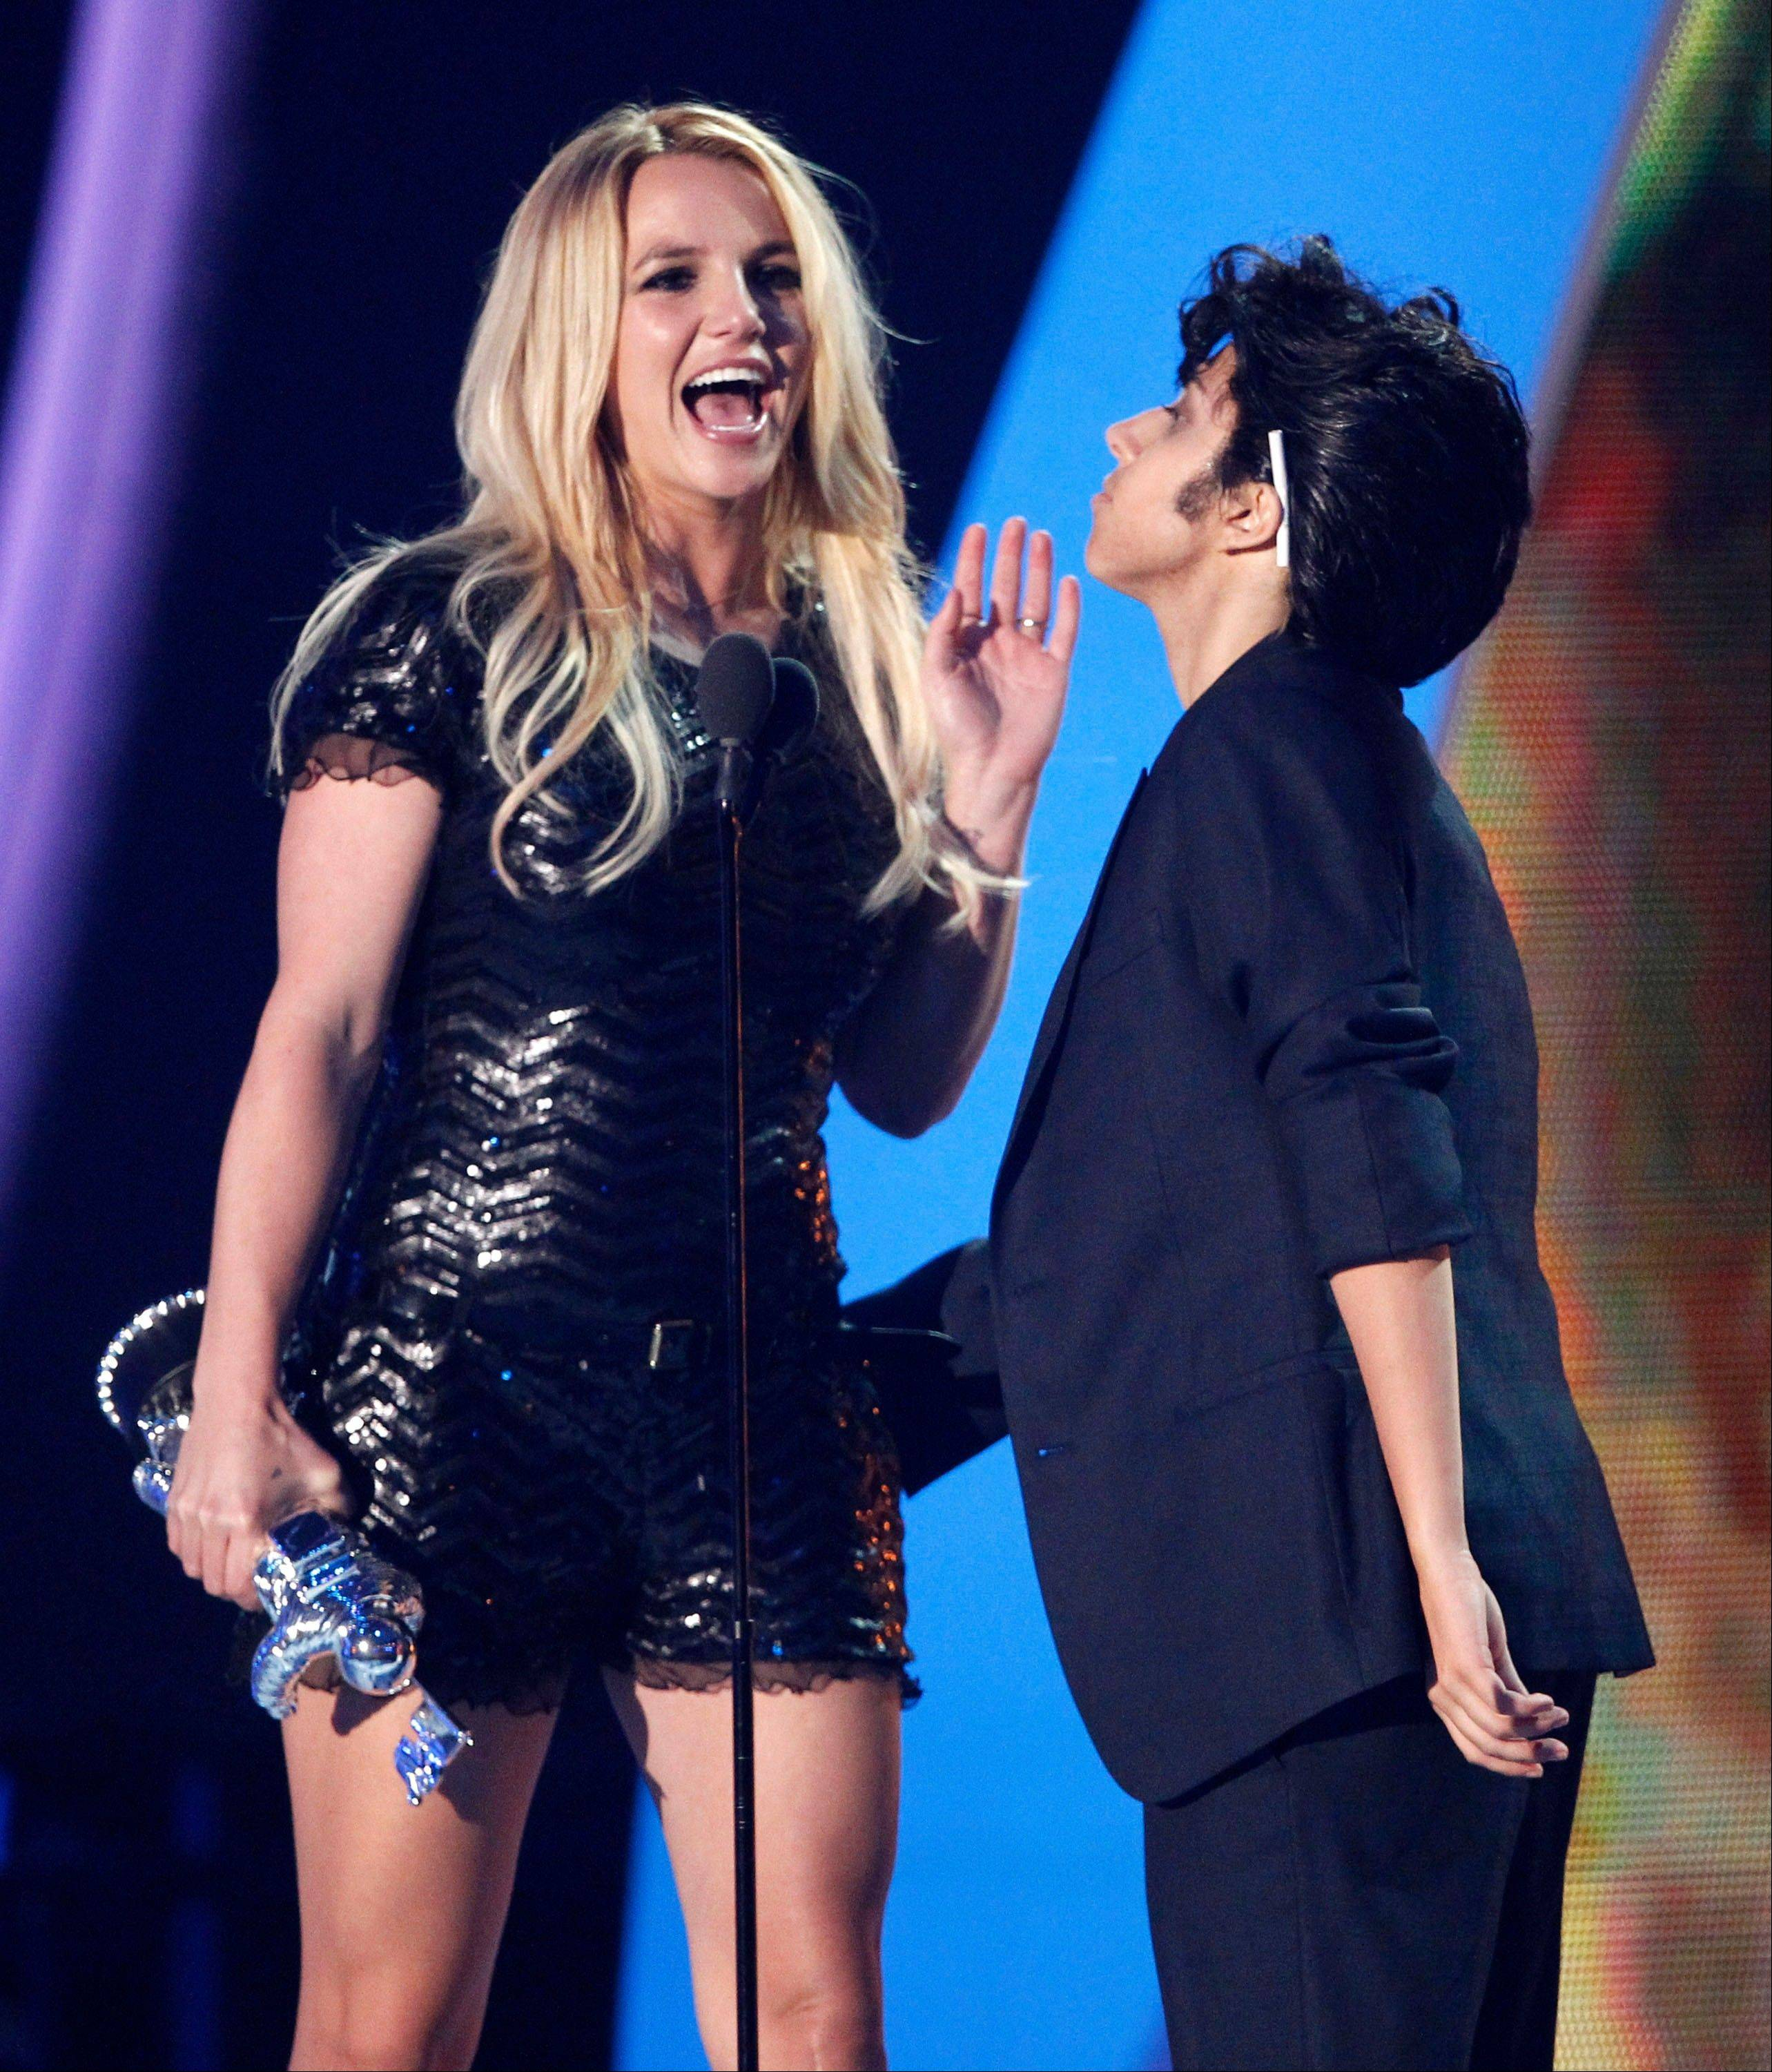 Lady Gaga, right, presents Britney Spears with the Video Vanguard award at the MTV Video Music Awards on Sunday in Los Angeles.